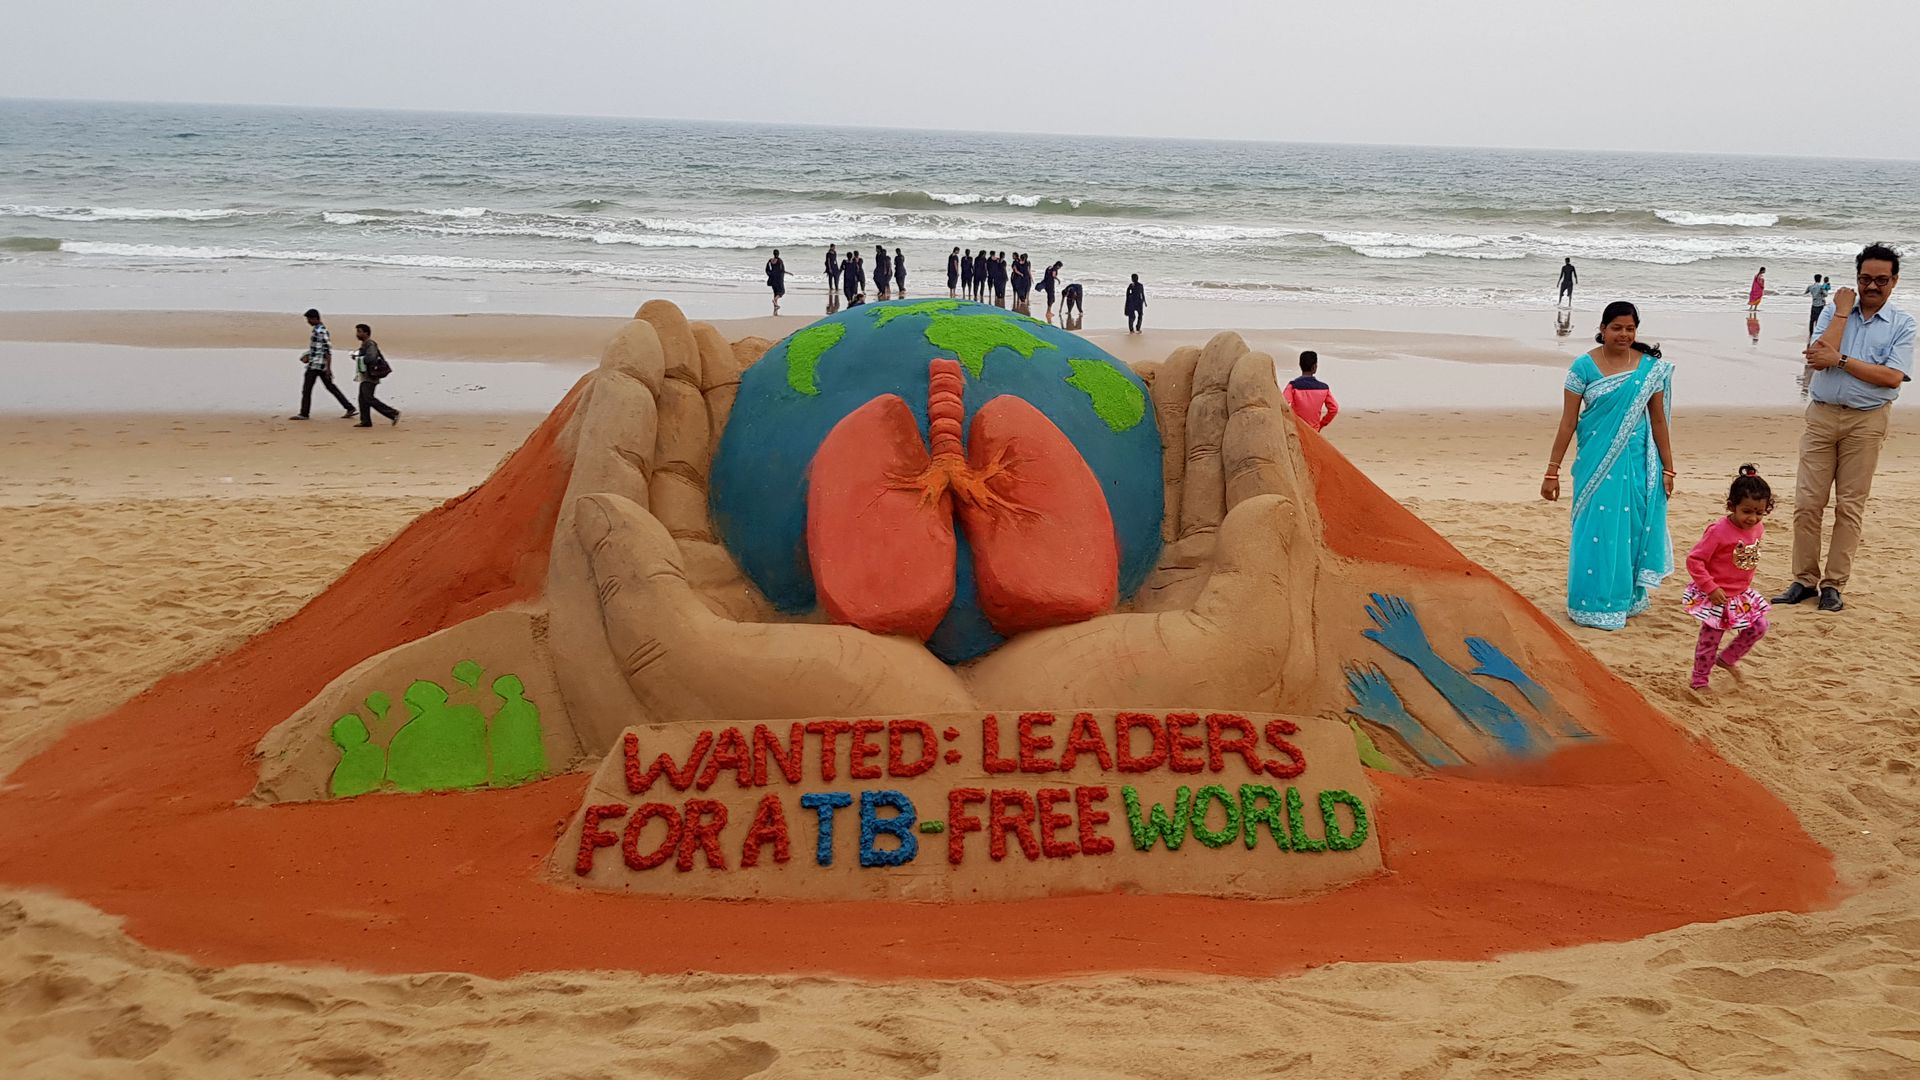 Photo of sand sculpture in India urging leaders to create a TB-free world